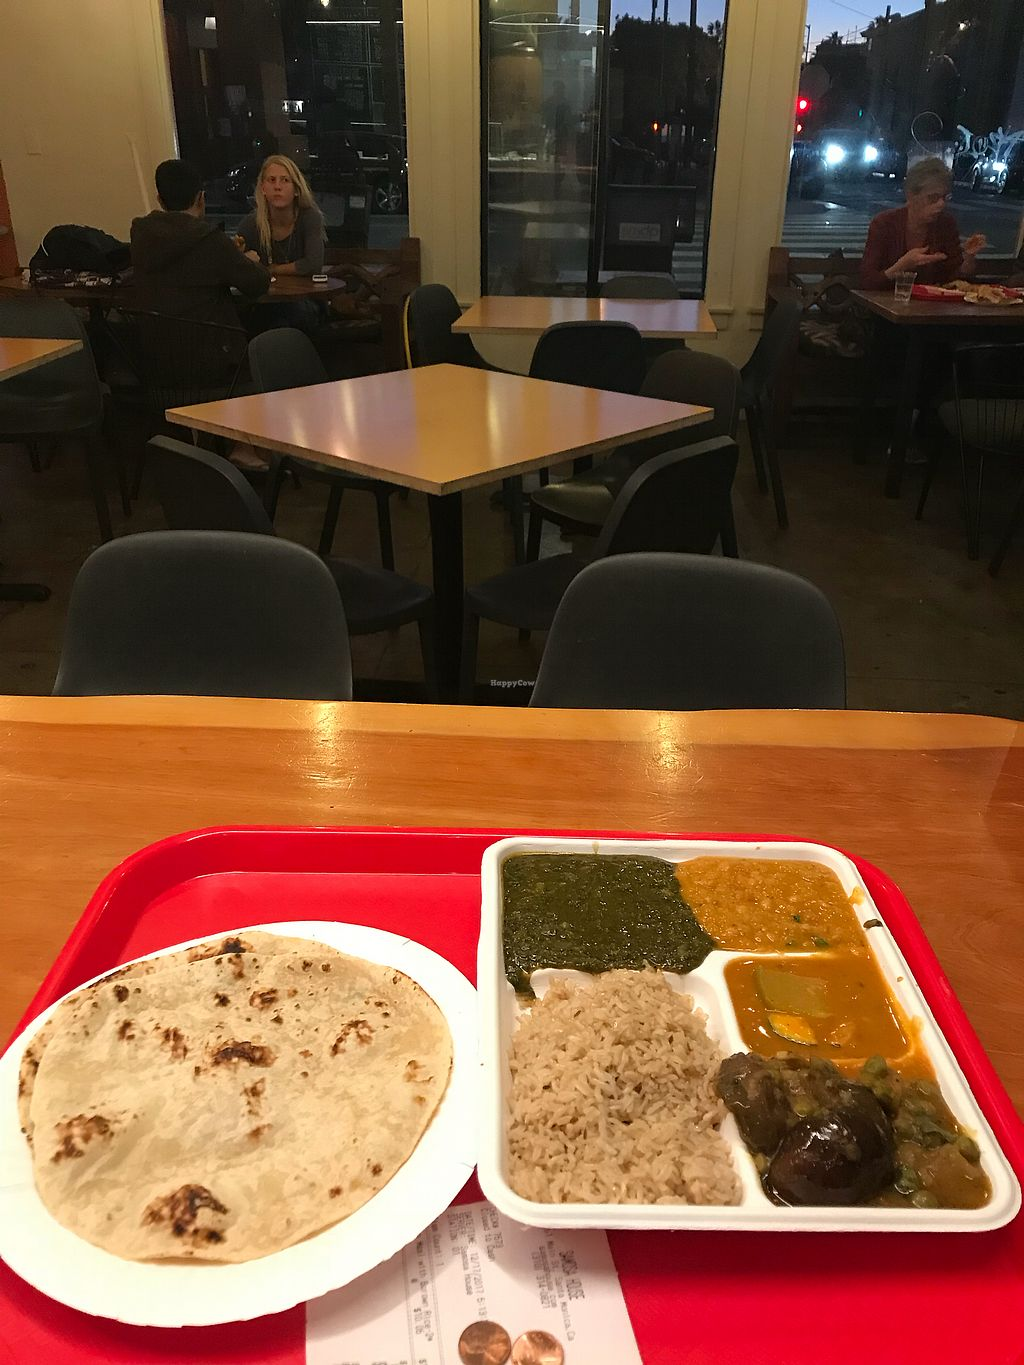 """Photo of Samosa House  by <a href=""""/members/profile/YahelSherman"""">YahelSherman</a> <br/>Yammi vegan food <br/> December 18, 2017  - <a href='/contact/abuse/image/78232/336702'>Report</a>"""